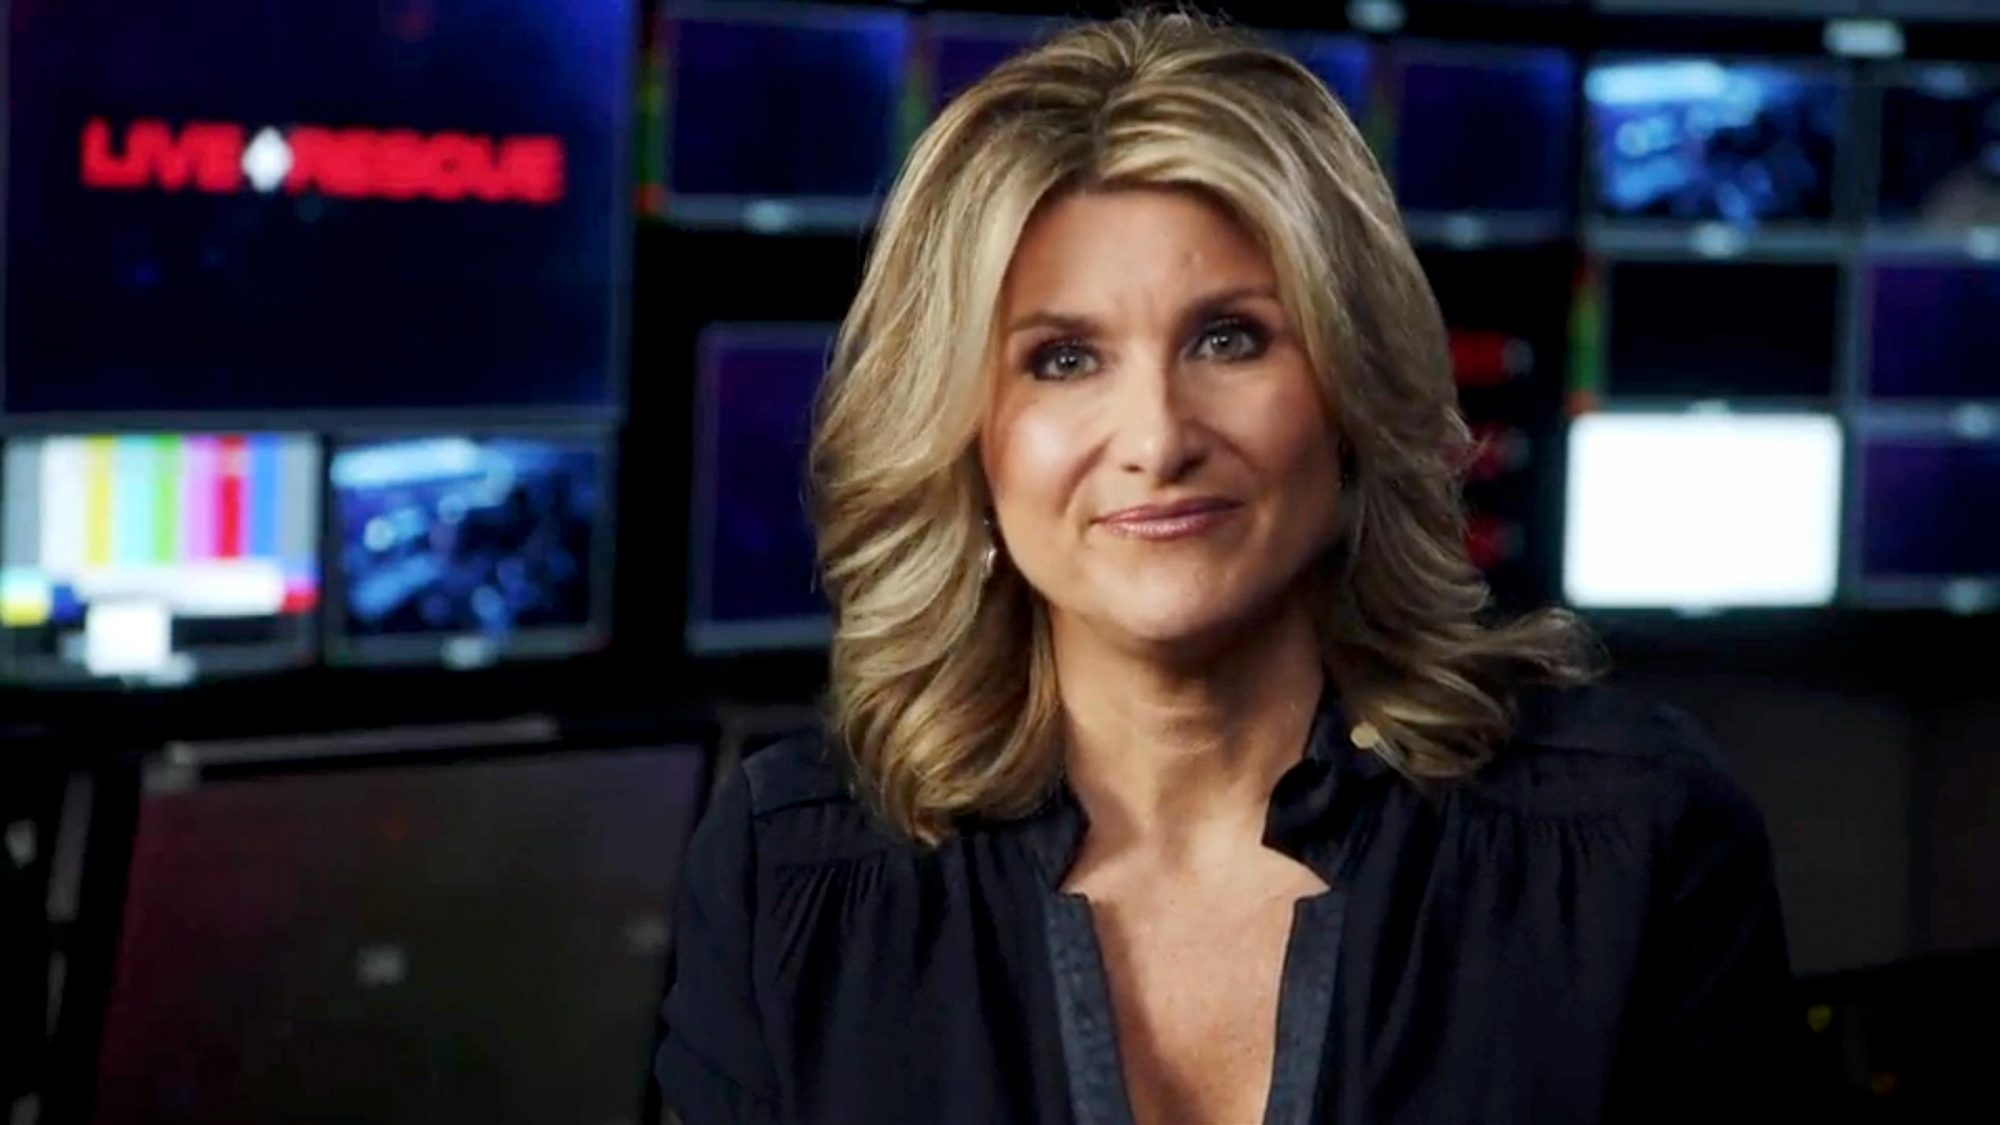 """Hosted by veteran journalist Ashleigh Banfield, """"Live Rescue"""" will follow first responders from across the country as they bravely put their lives on the line responding to emergency rescue calls. CR: A&E"""